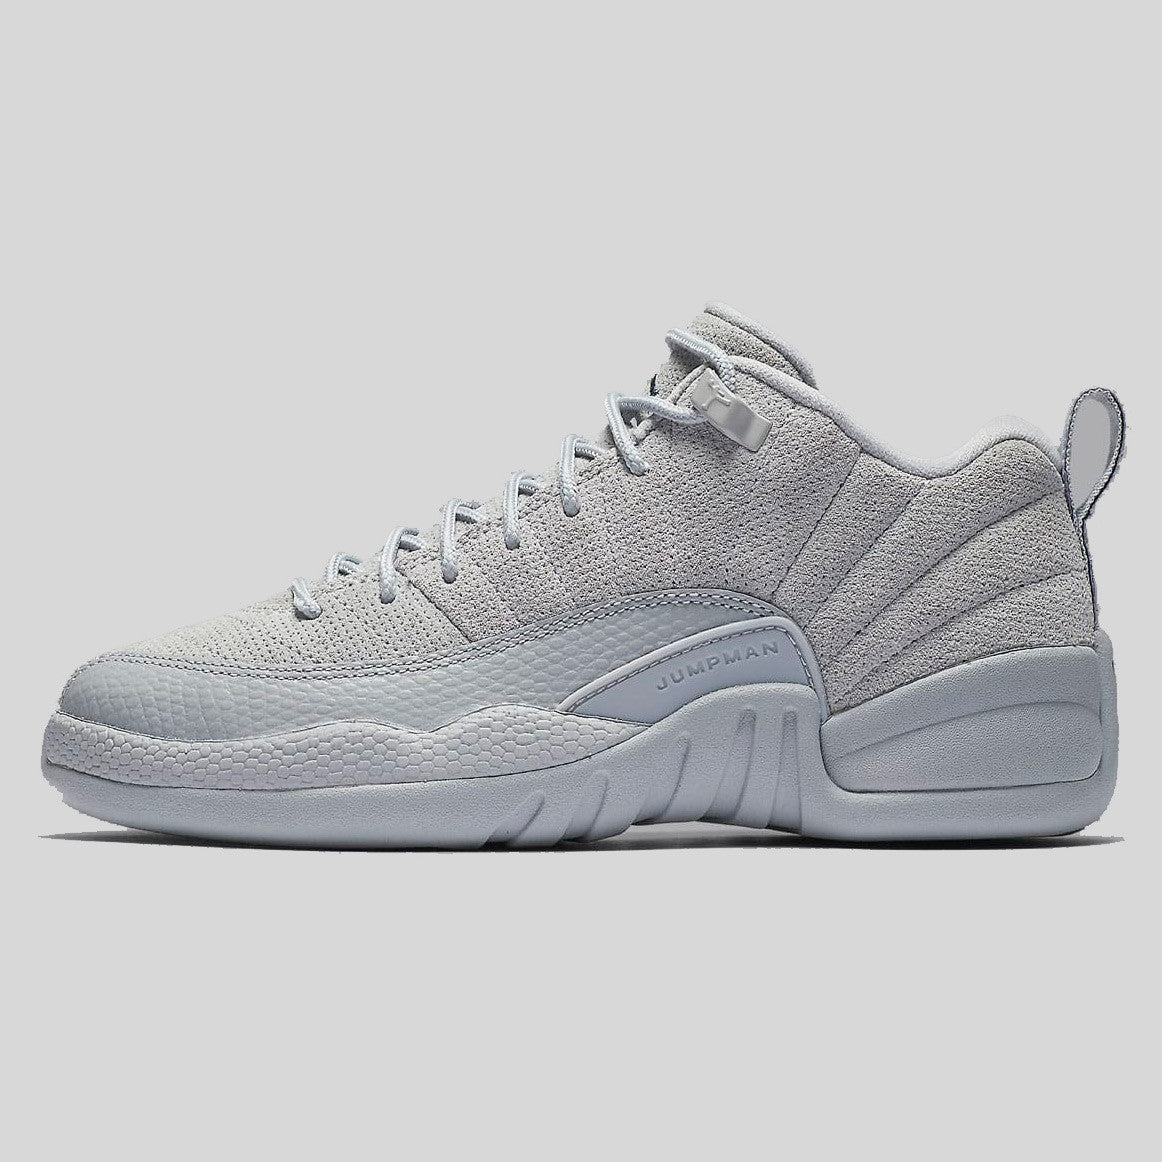 b0612fa61c3 Nike Air Jordan 12 Retro Low Wolf Grey (308317-002)